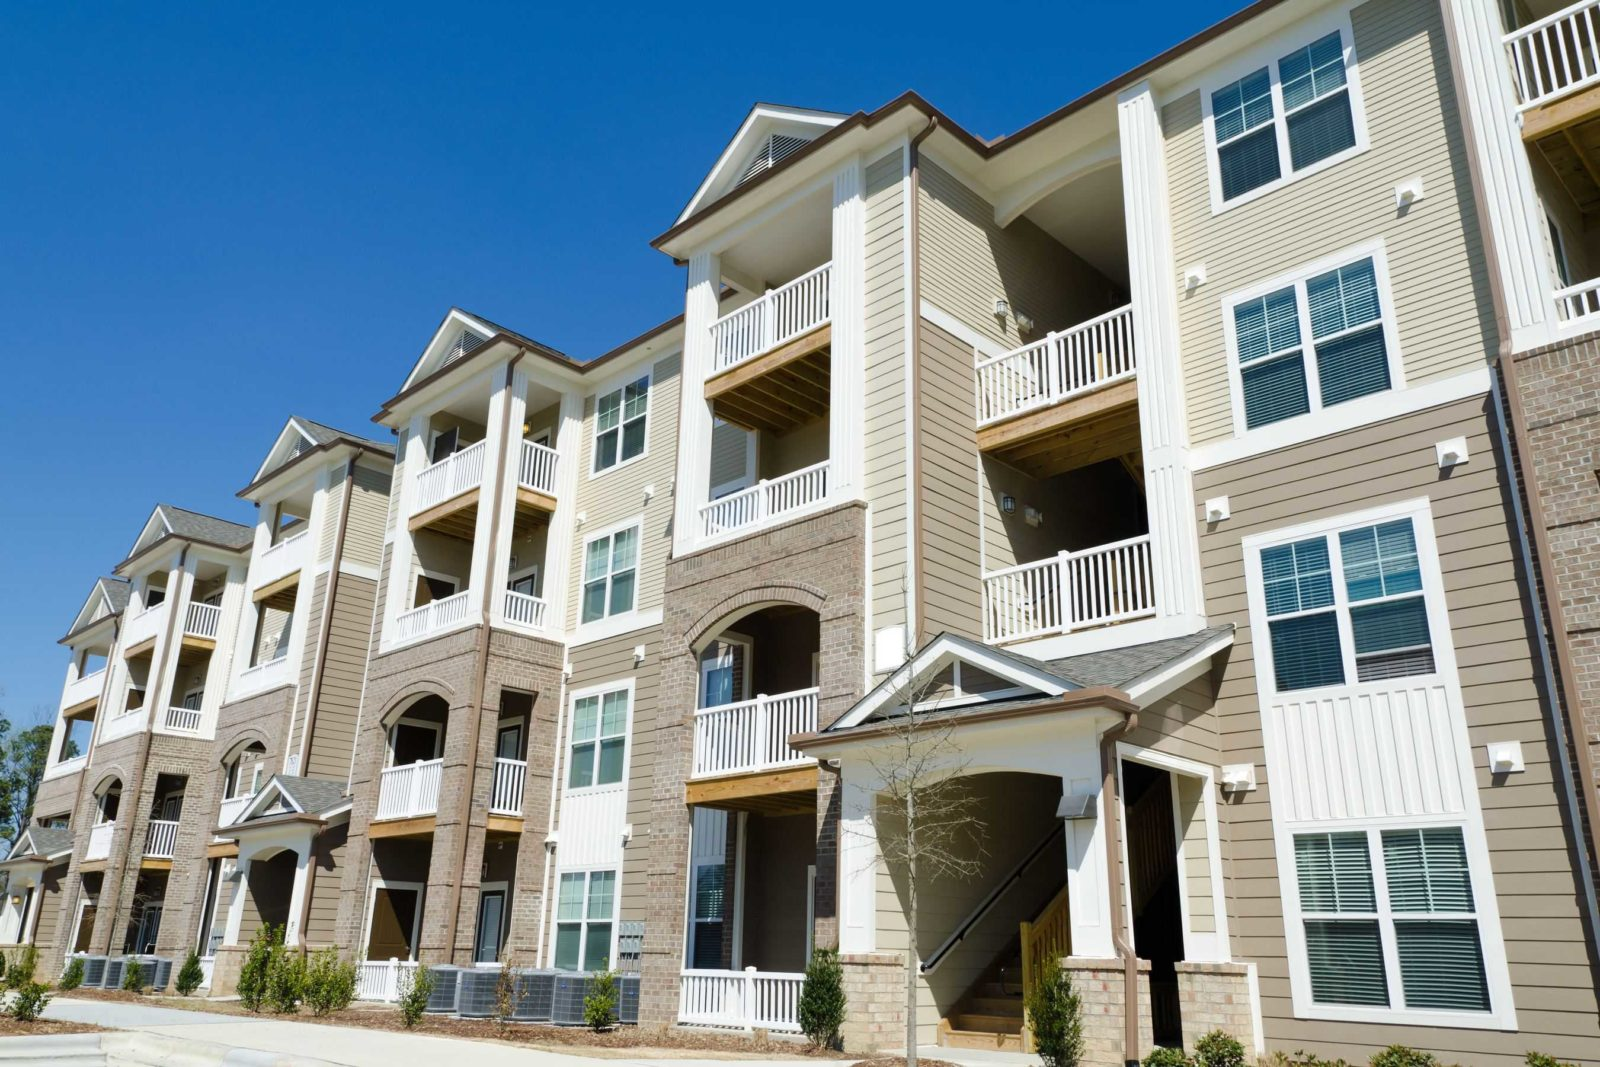 New apartment building construction process by MEP Painting & Wallcoverings in north carolina